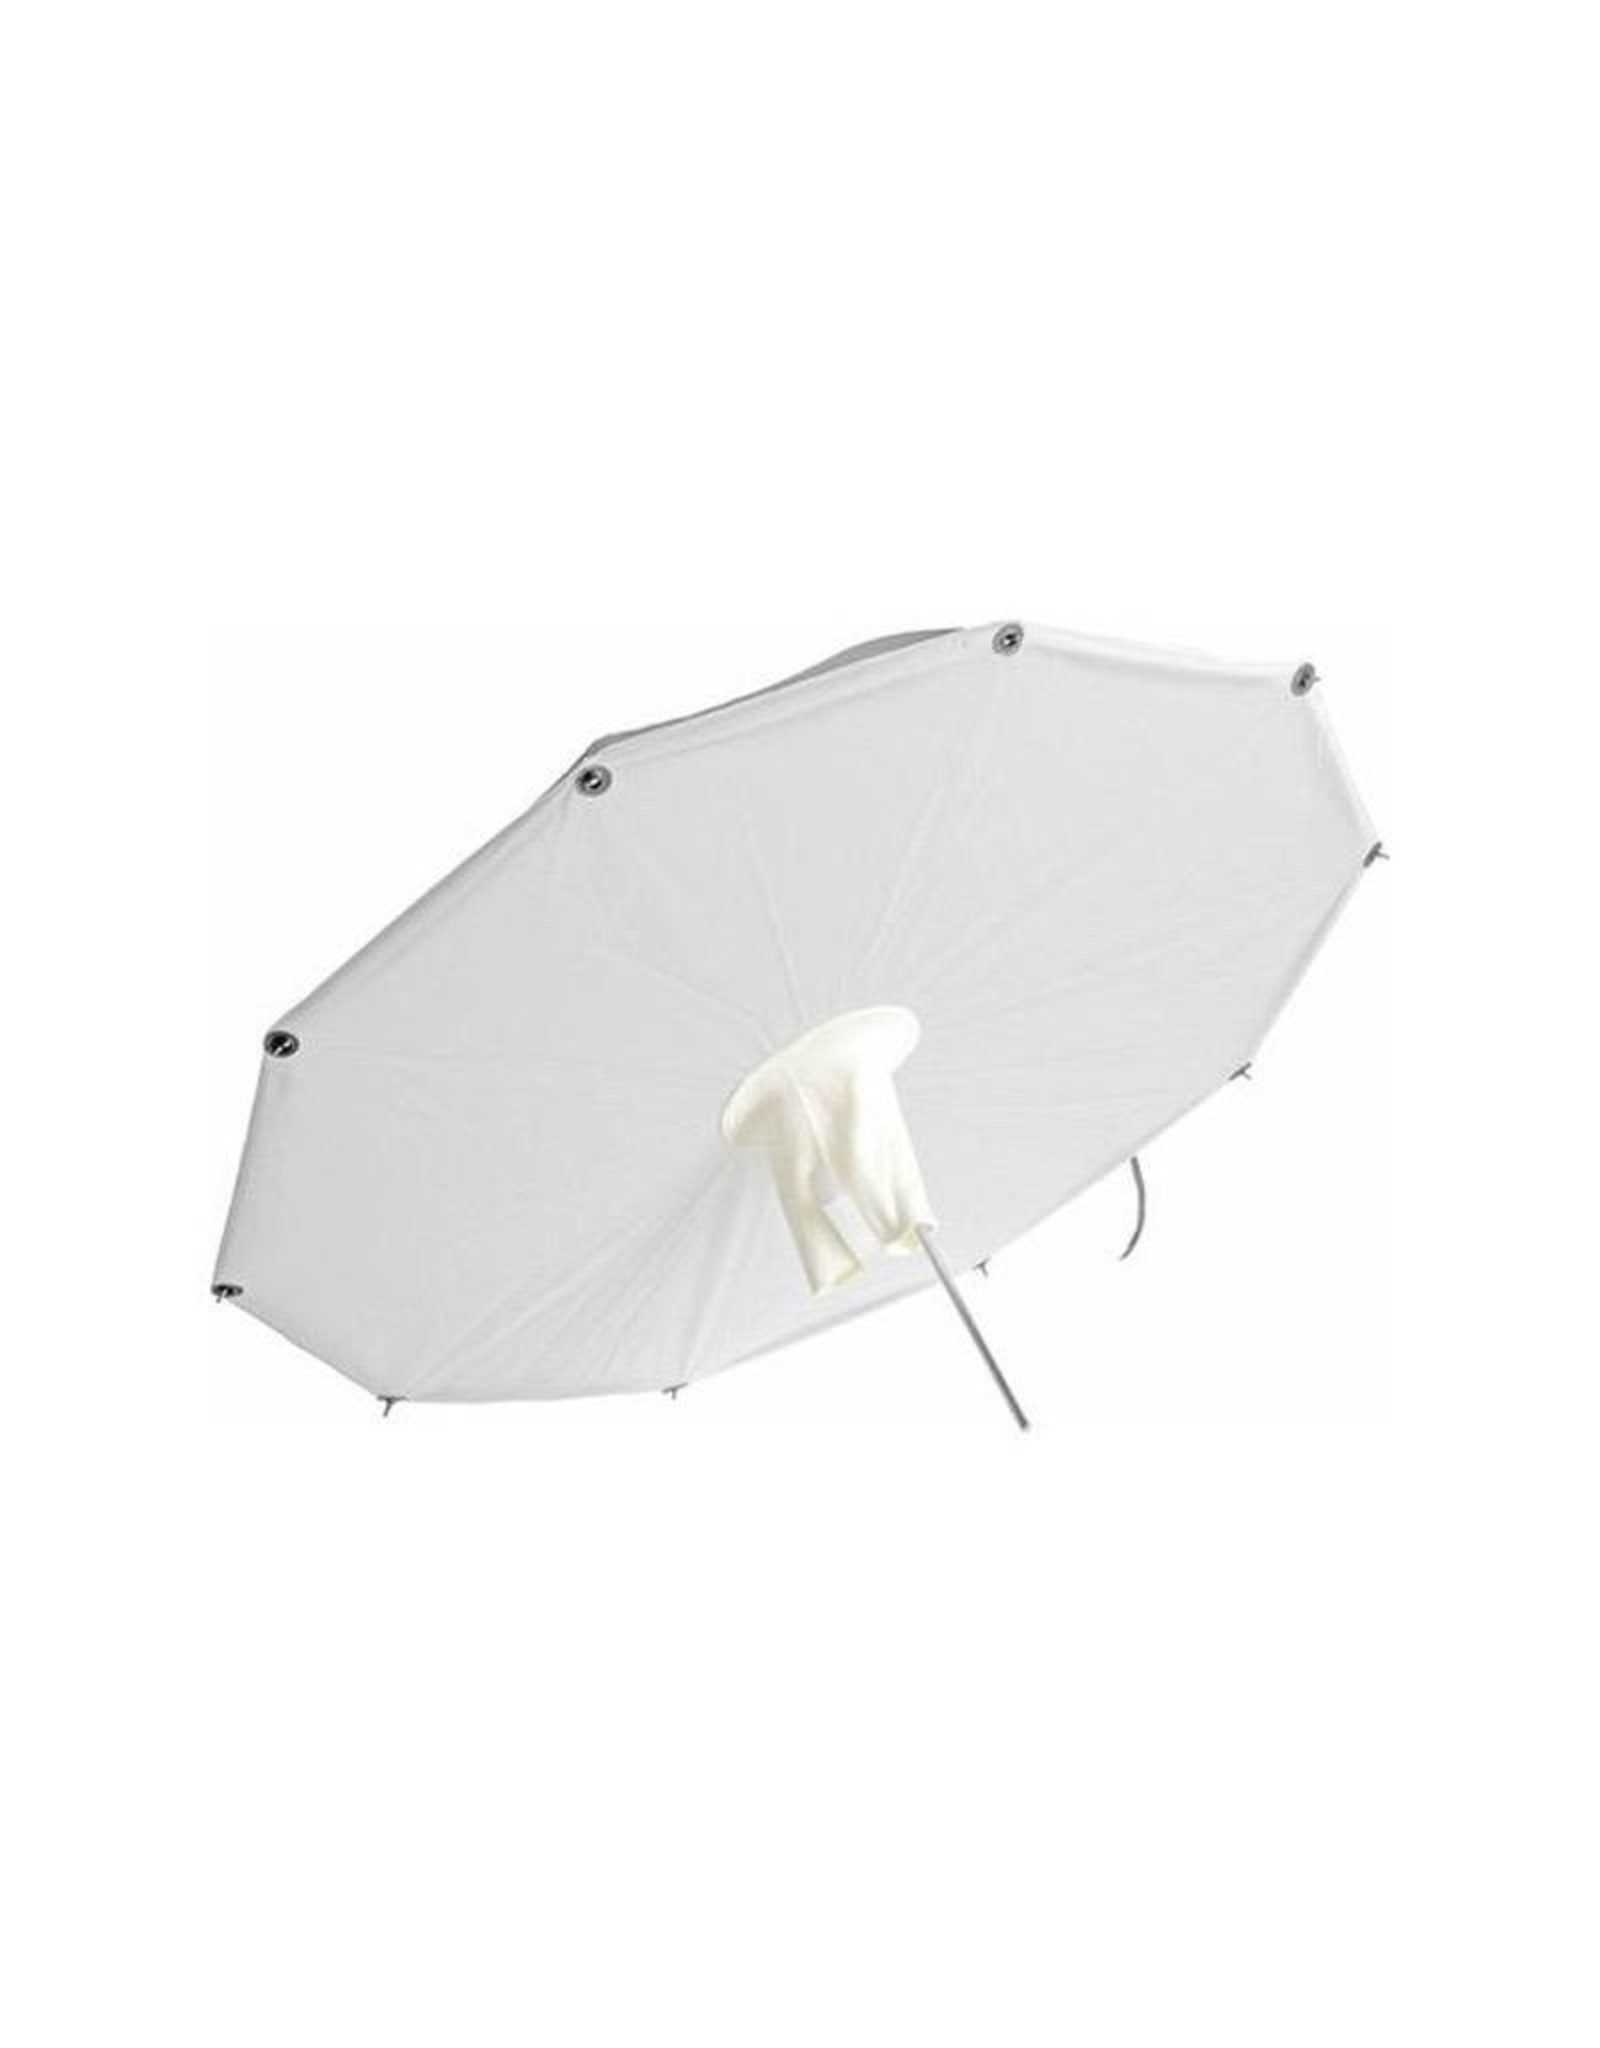 Photek Photek Umbrella - SoftLighter II with 7mm & 8mm Shafts - 60""